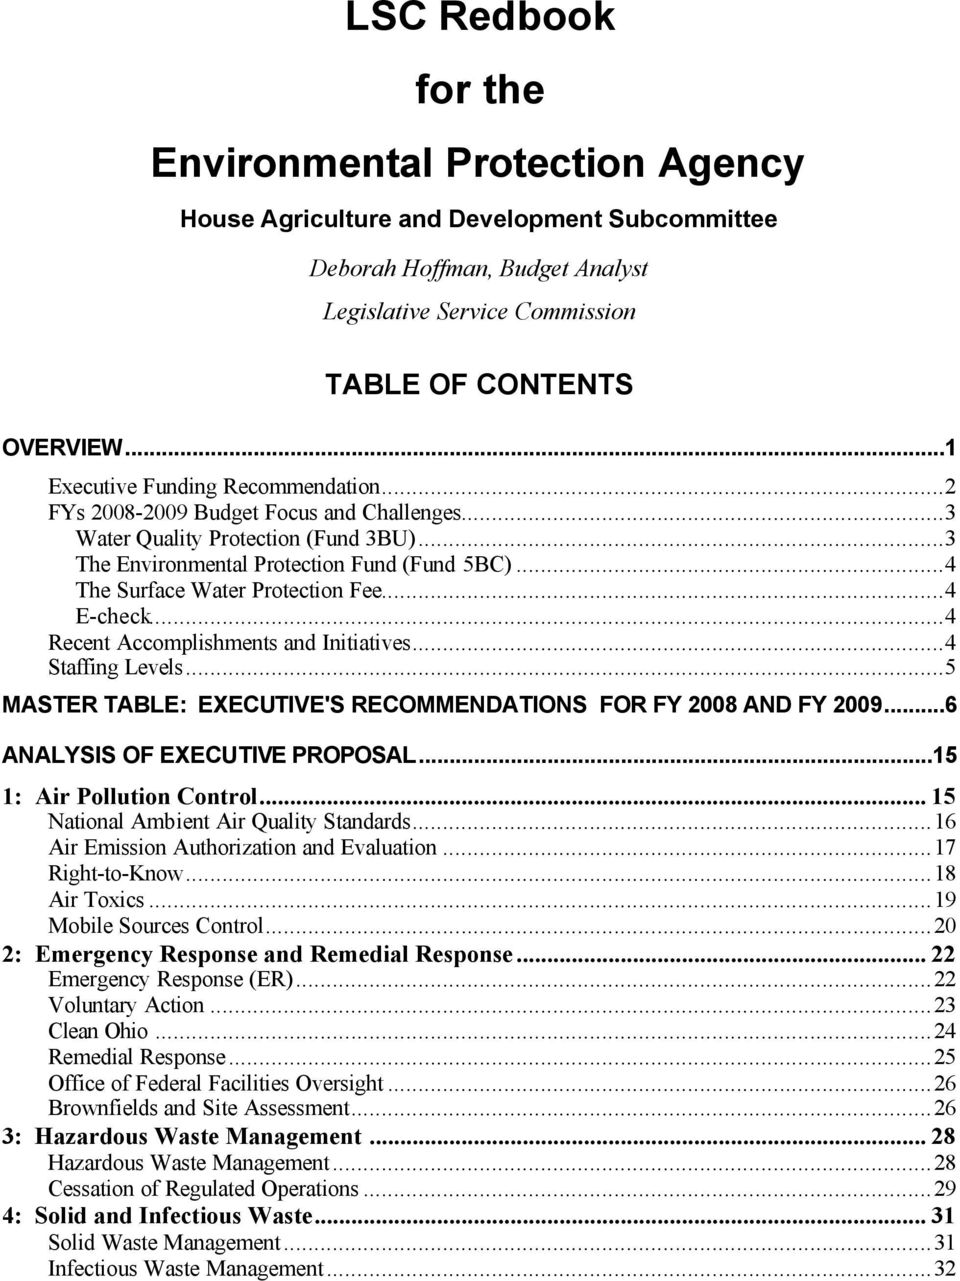 ..4 E-check...4 Recent Accomplishments and Initiatives...4 Staffing Levels...5 MASTER TABLE: EXECUTIVE'S RECOMMENDATIONS FOR FY AND FY...6 ANALYSIS OF EXECUTIVE PROPOSAL...15 1: Air Pollution Control.